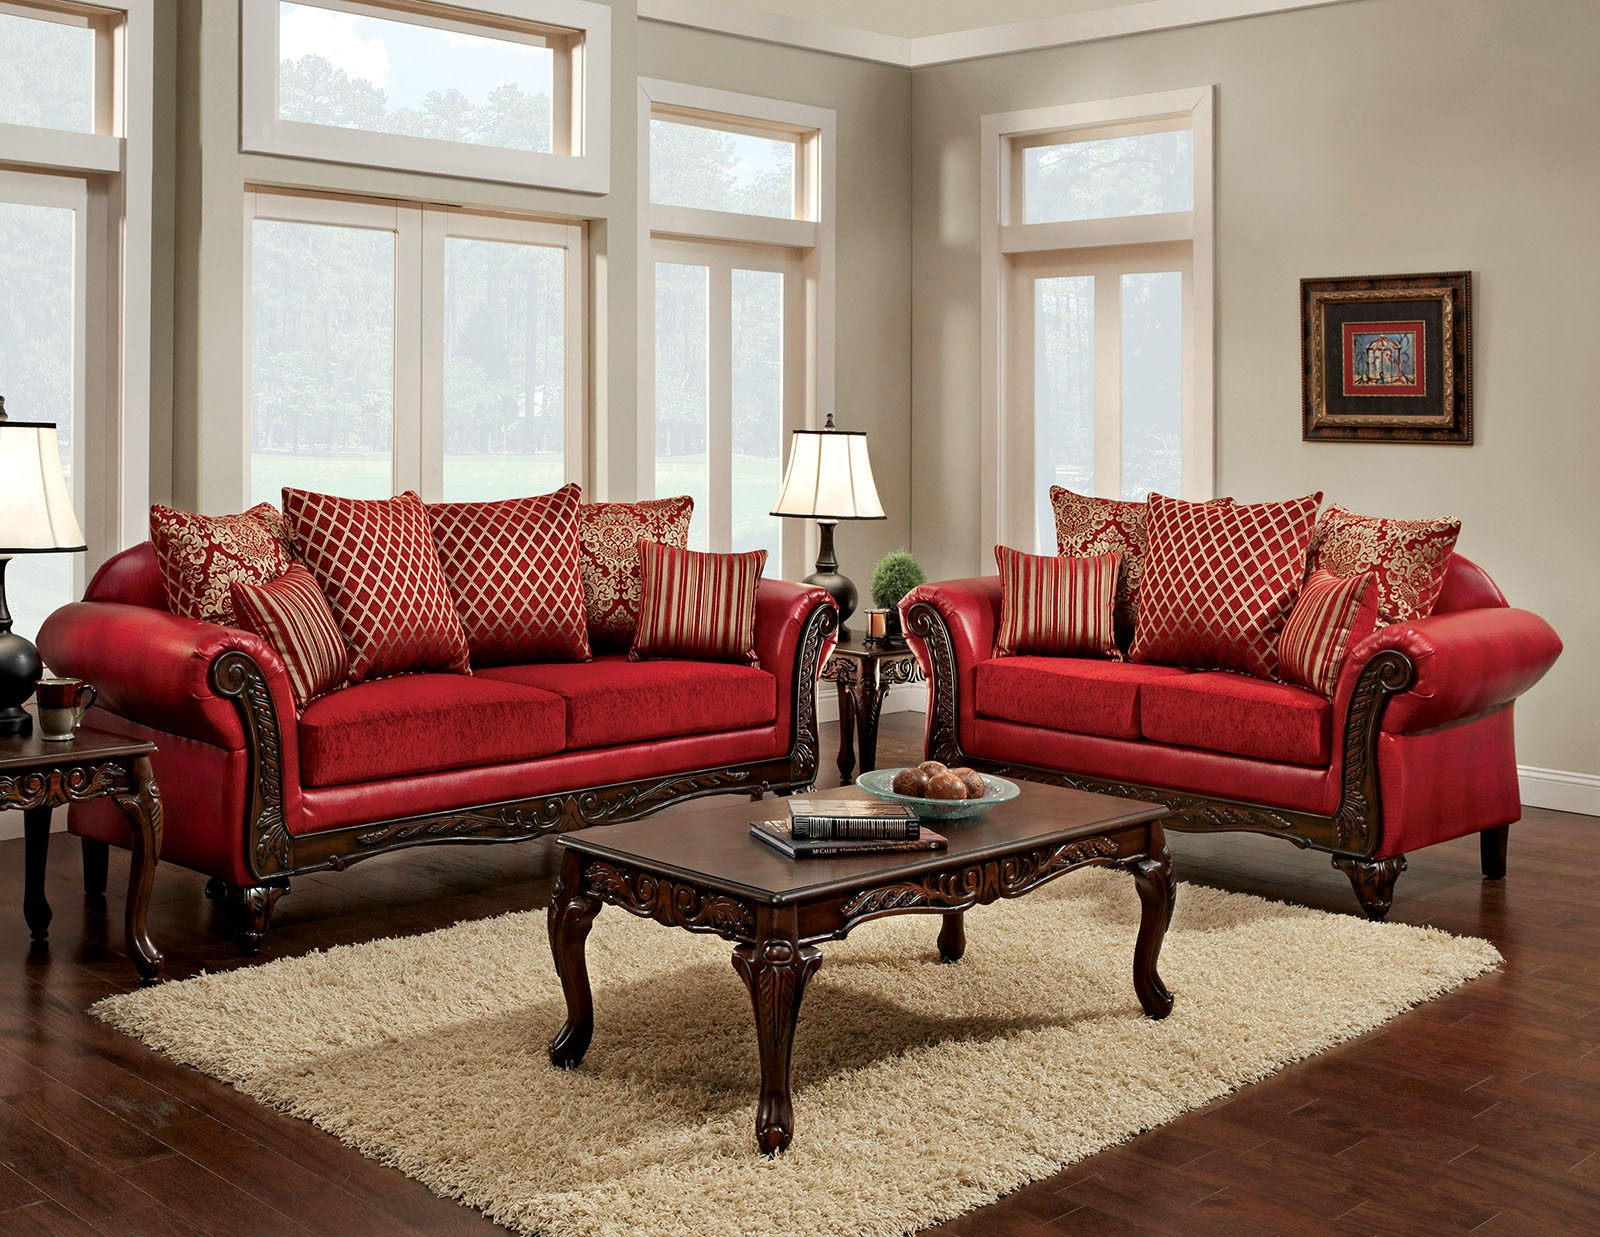 Marcus Red Living Room Set, Sm7640sf, Furniture Of America. Design The Perfect Living Room. House Extension Living Room. Hgtv Living Room Arrangements. Living Room Corner Lamps India. Living Room Design Tool Free. The Living Room Comedy Central. Small Living Room And Kitchen Combined. Copper Kitchen Canisters